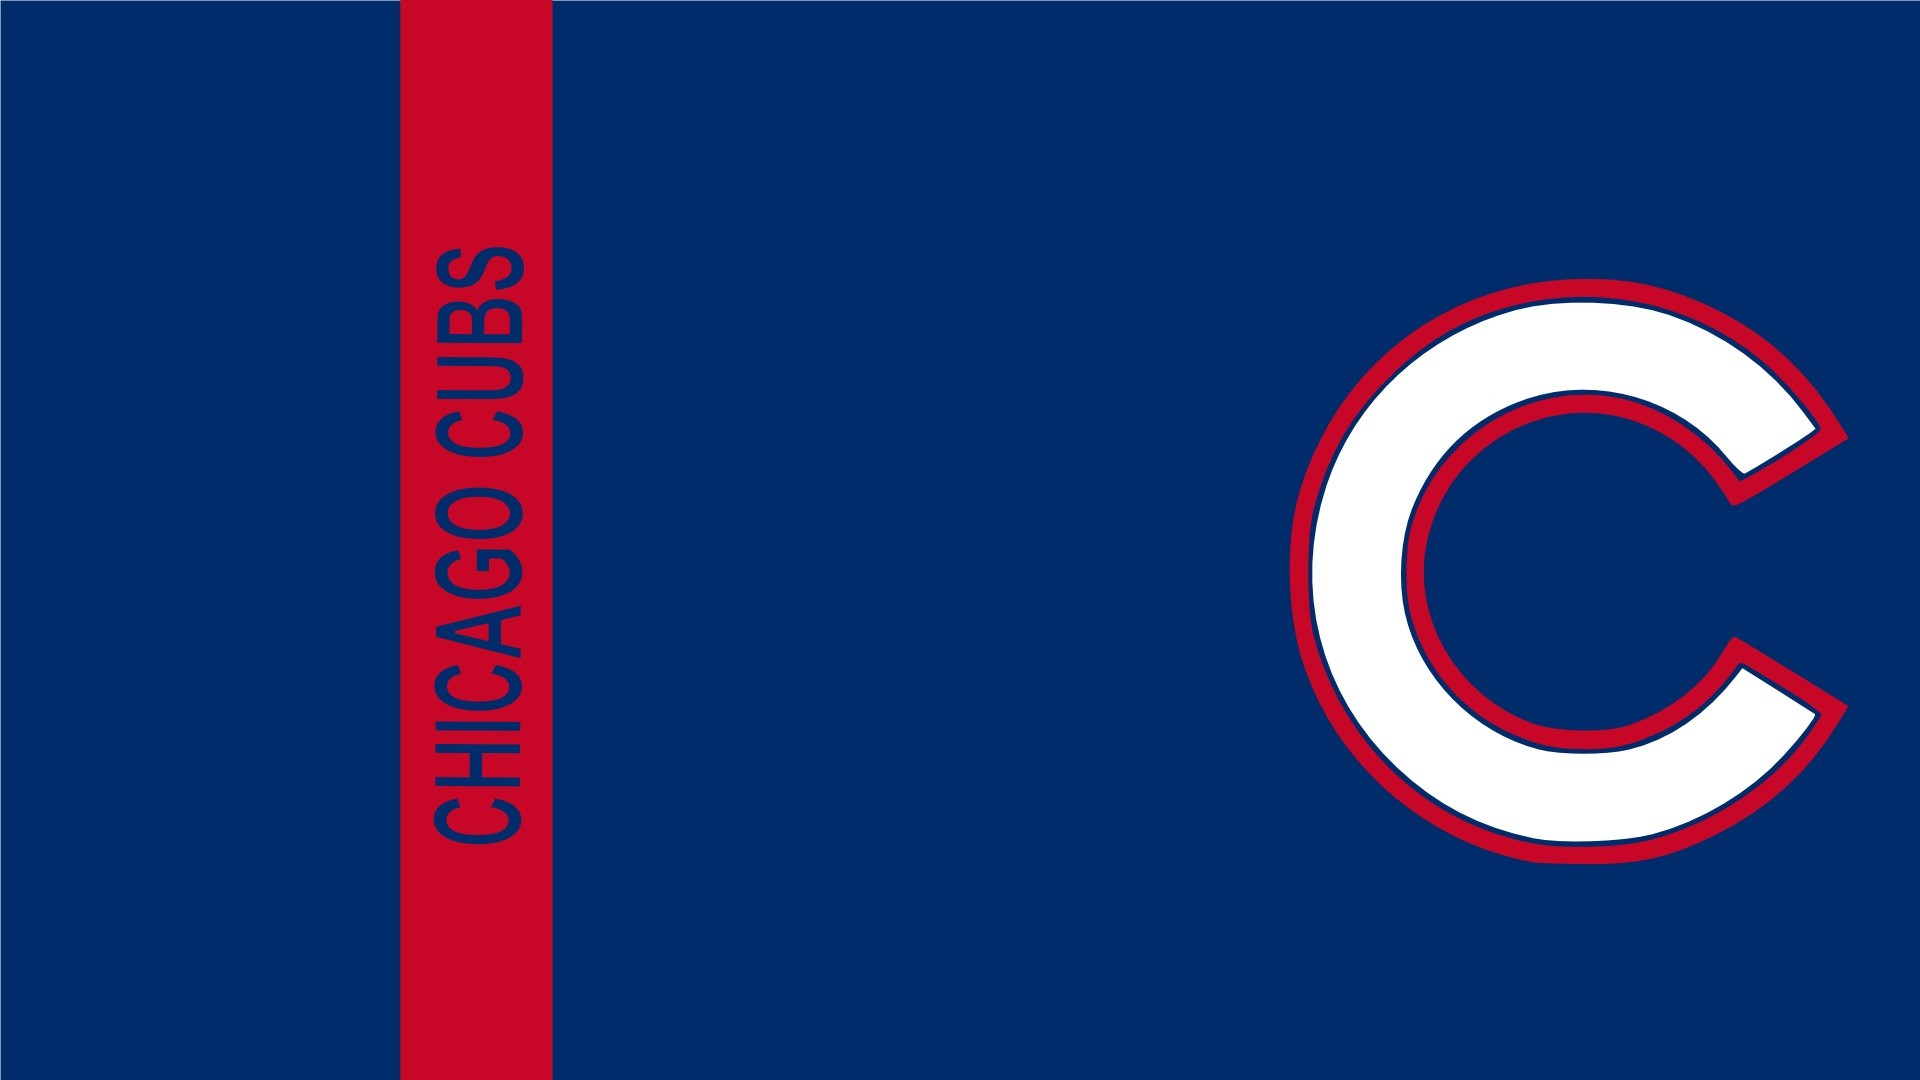 Cubs Flags Wallpaper Free – Android Apps on Google Play